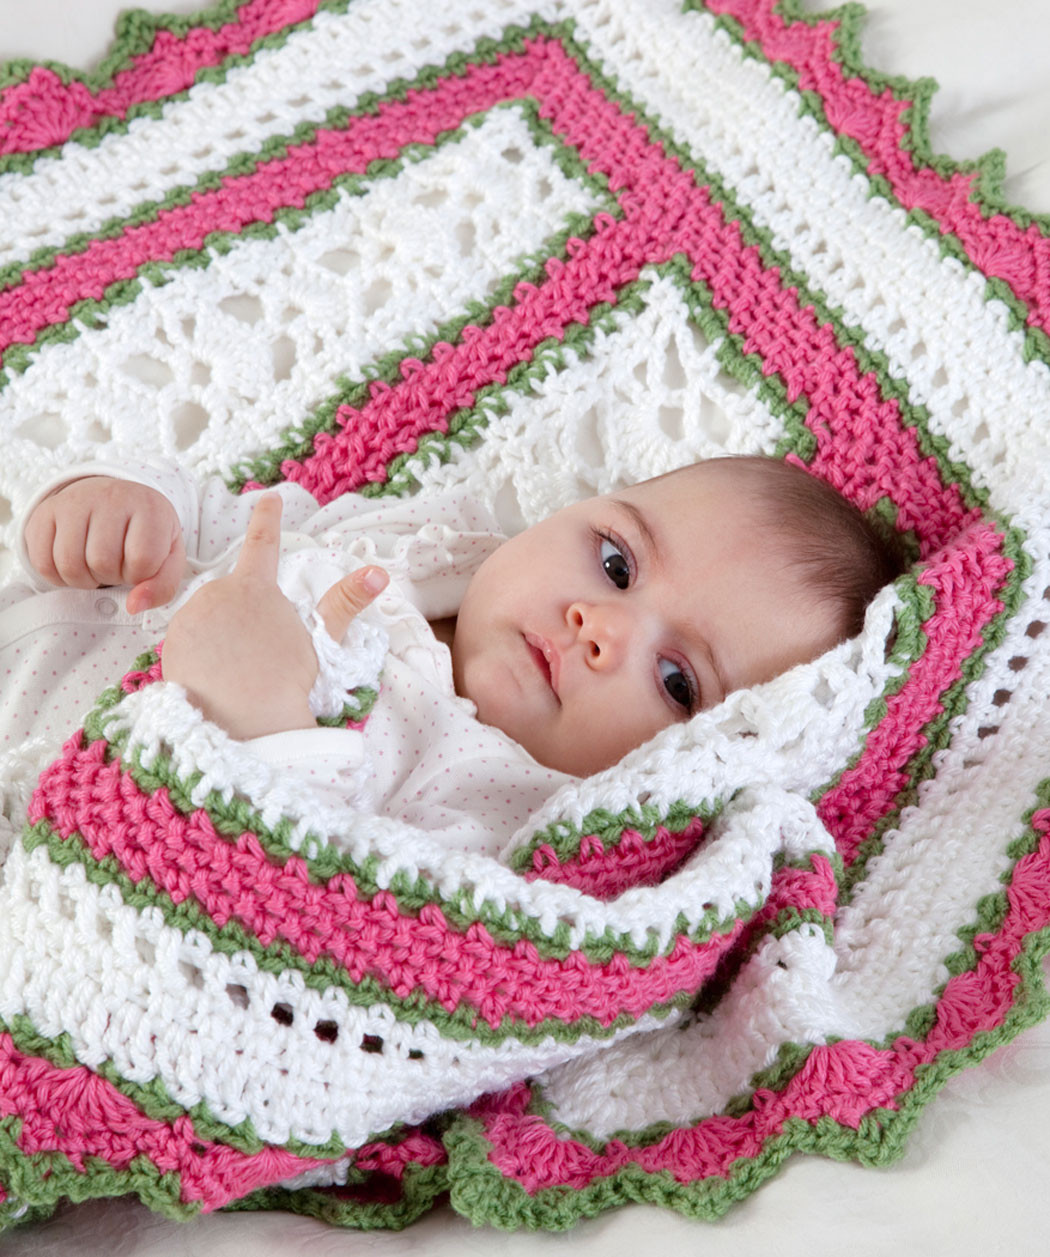 Crochet Baby Awesome 10 Beautiful Baby Blanket Free Patterns Of Marvelous 50 Ideas Crochet Baby